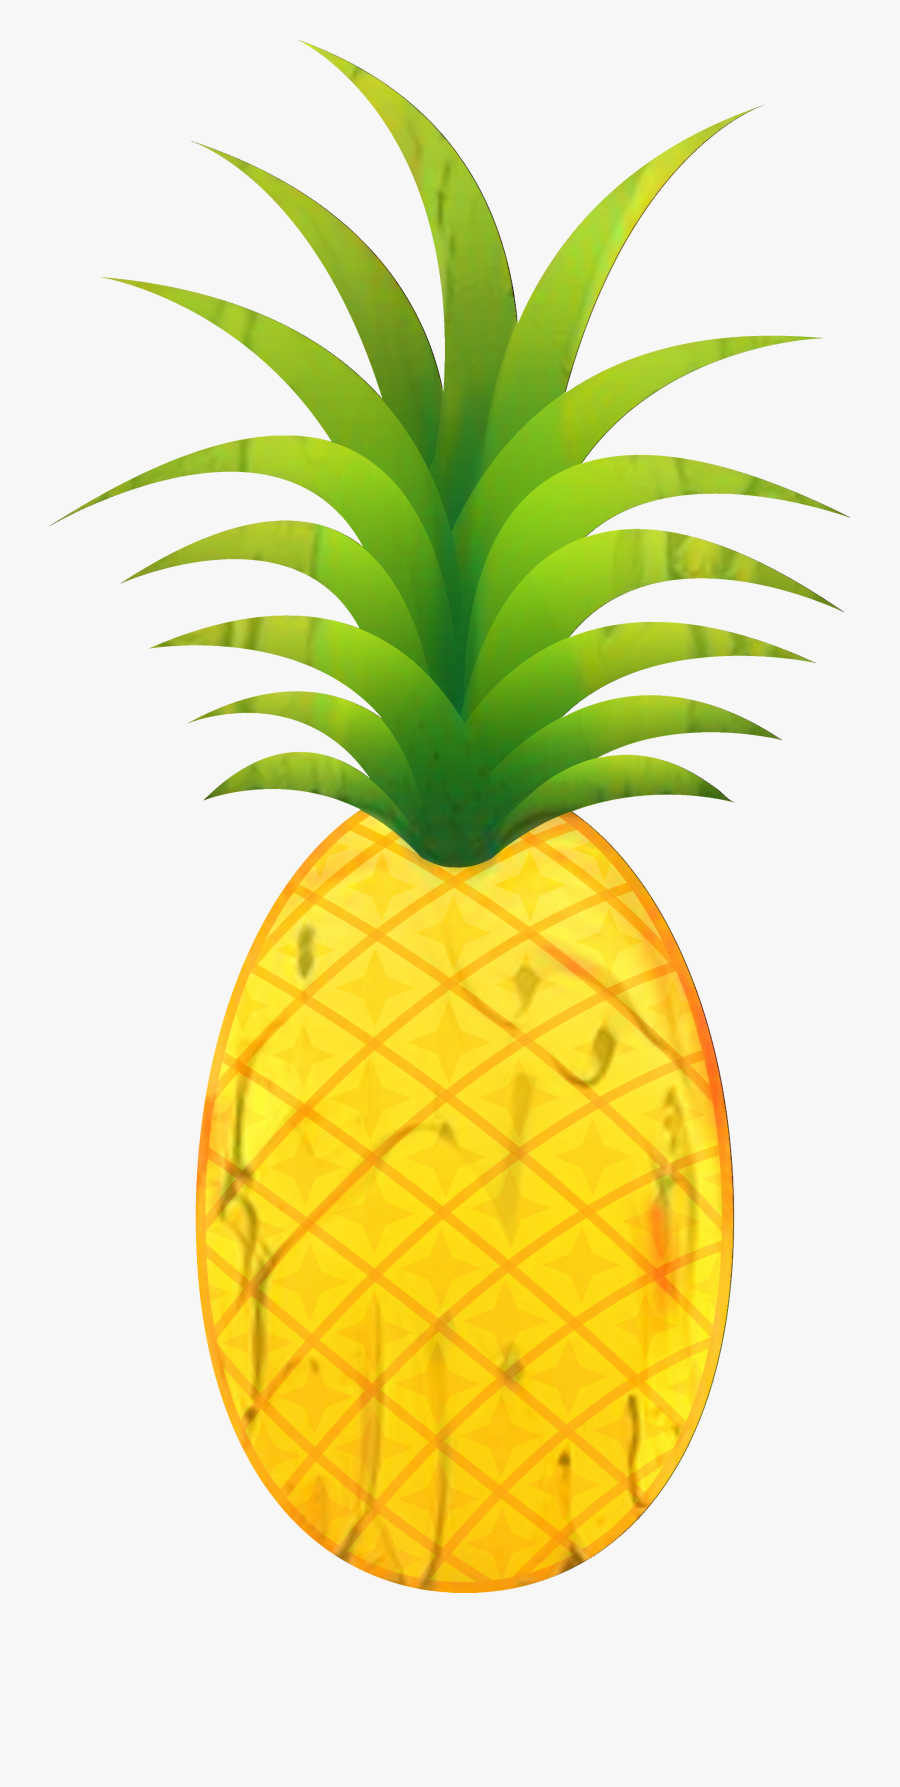 Pineapple Clip Art Portable Network Graphics Image - Transparent Pineapple Clipart, Transparent Clipart